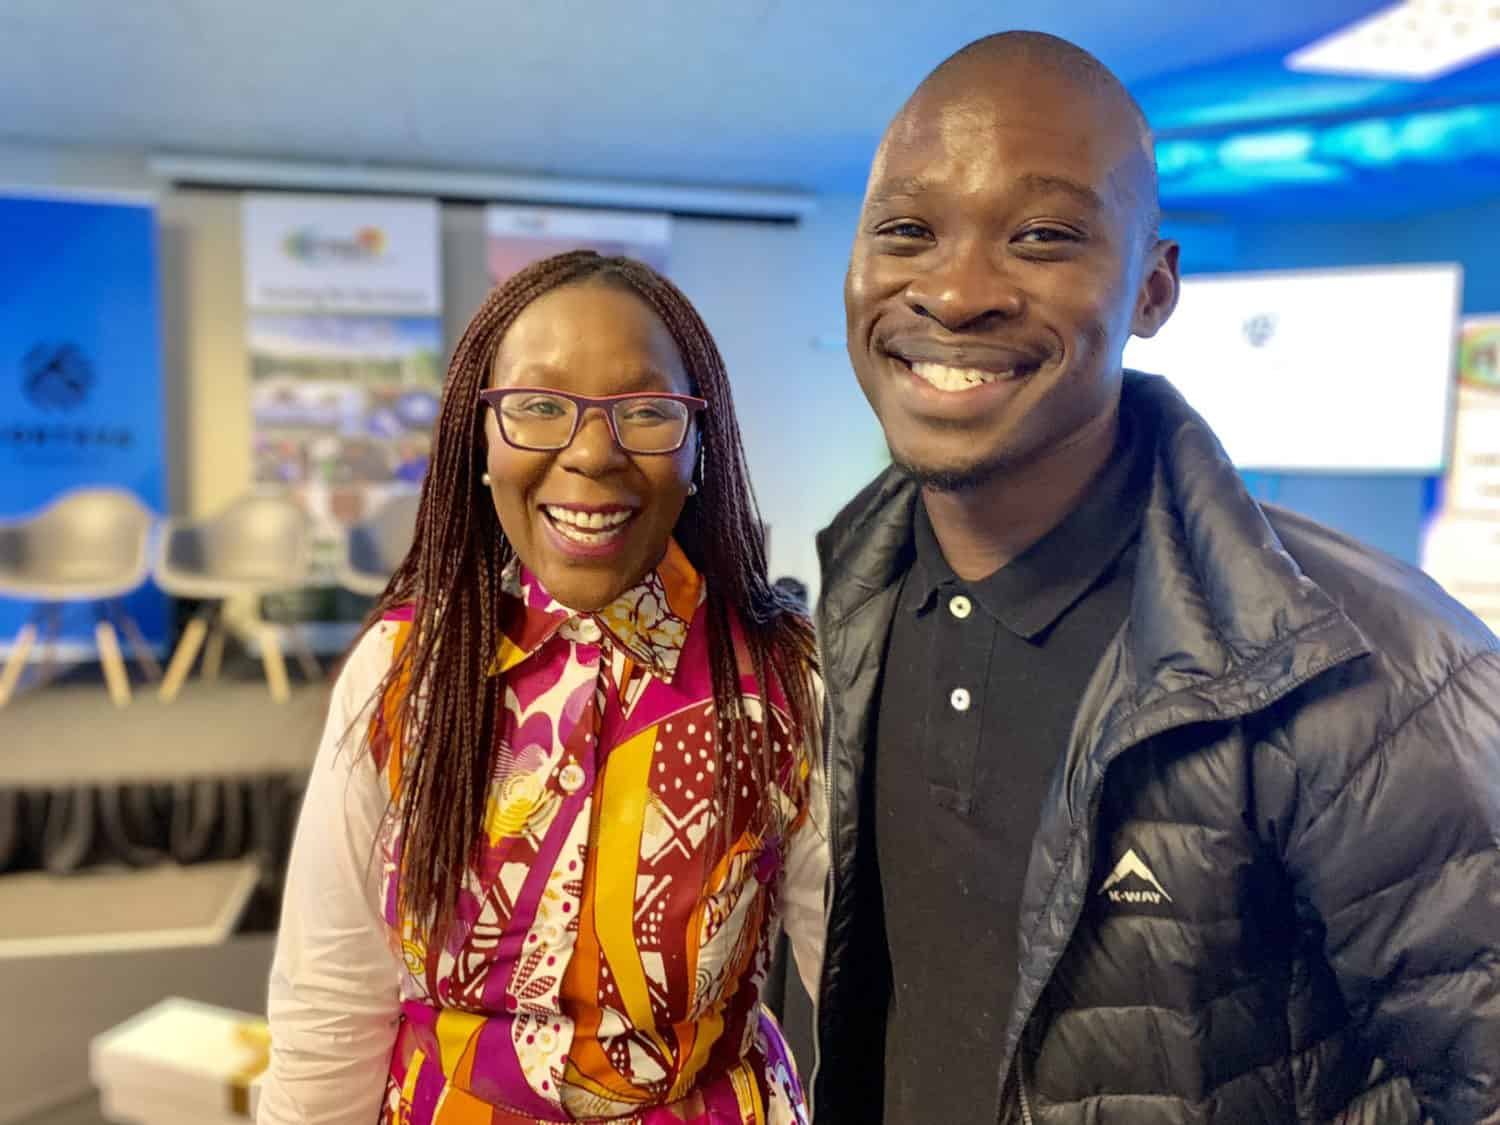 The 25-year-old farmer Andile Ngcobo (right) and Polo Leteka, the executive director and co-founder of IDF Capital, an entrepreneurial financier and advisory firm.